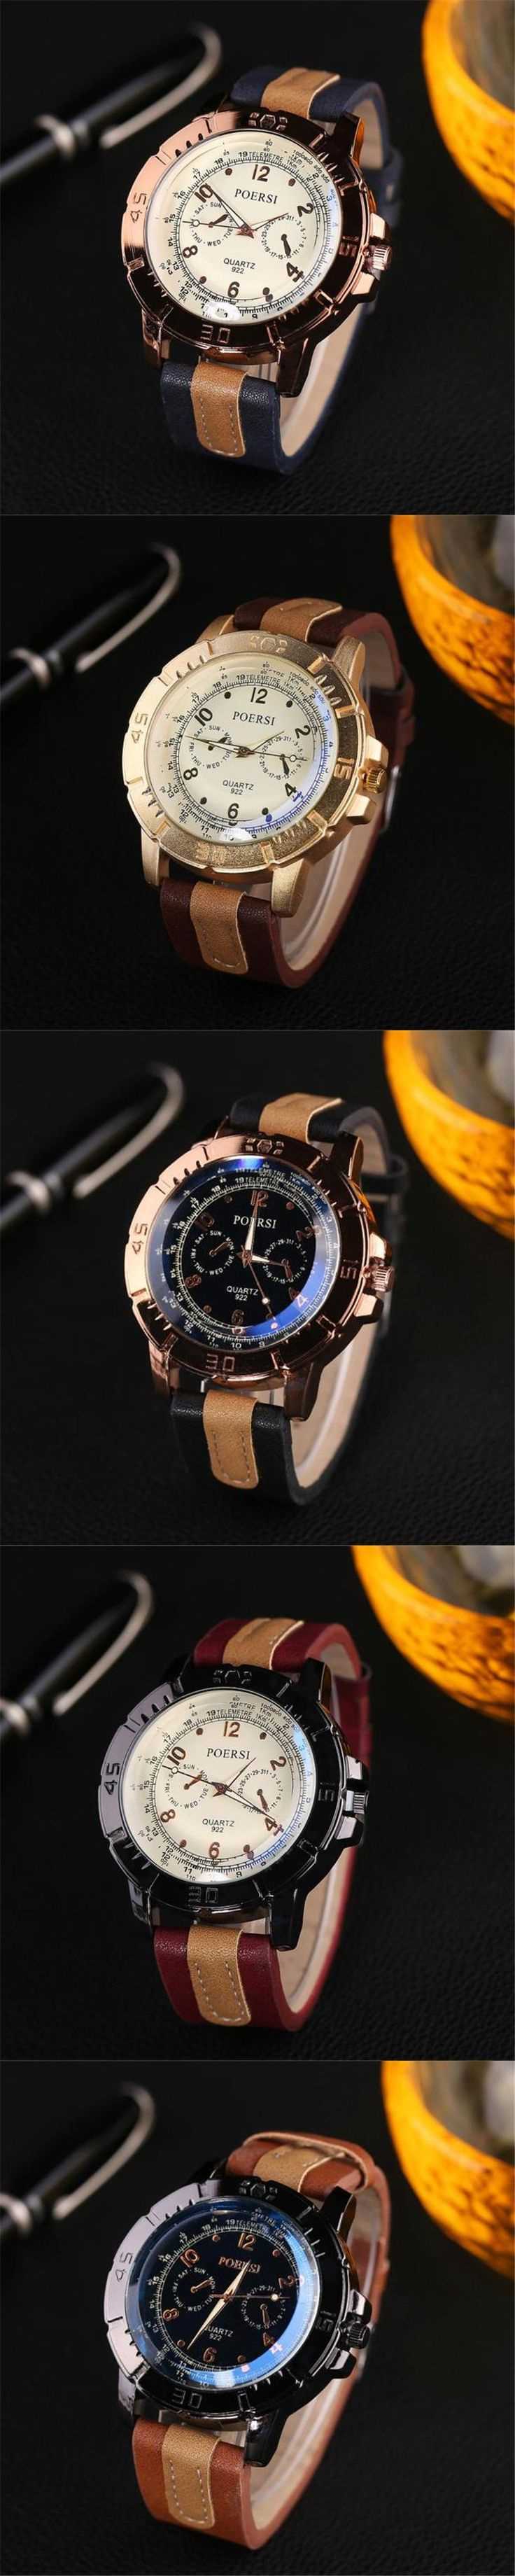 watch gold brand watches s bracelet female in wrist bezel dial women taylor cole mesh crystal feminino golden quartz round dress casual from strap item relogio clock lady fashion slim